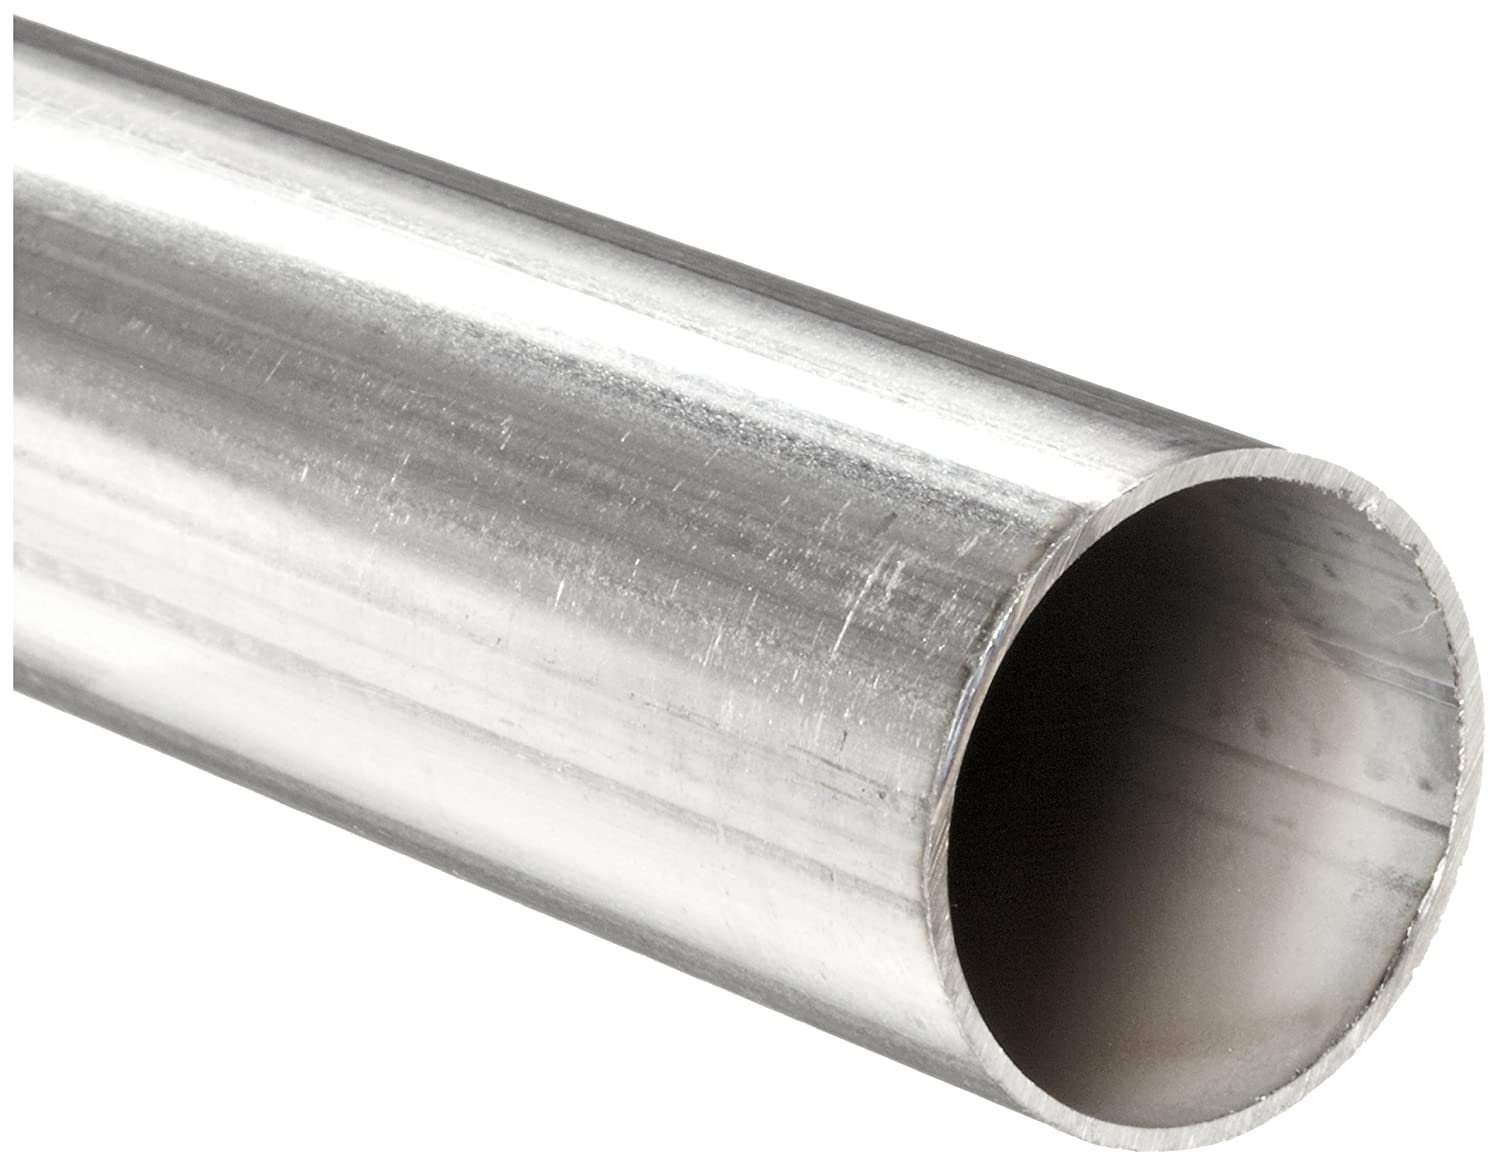 Stainless Steel 316L Welded Round Tubing Small Parts